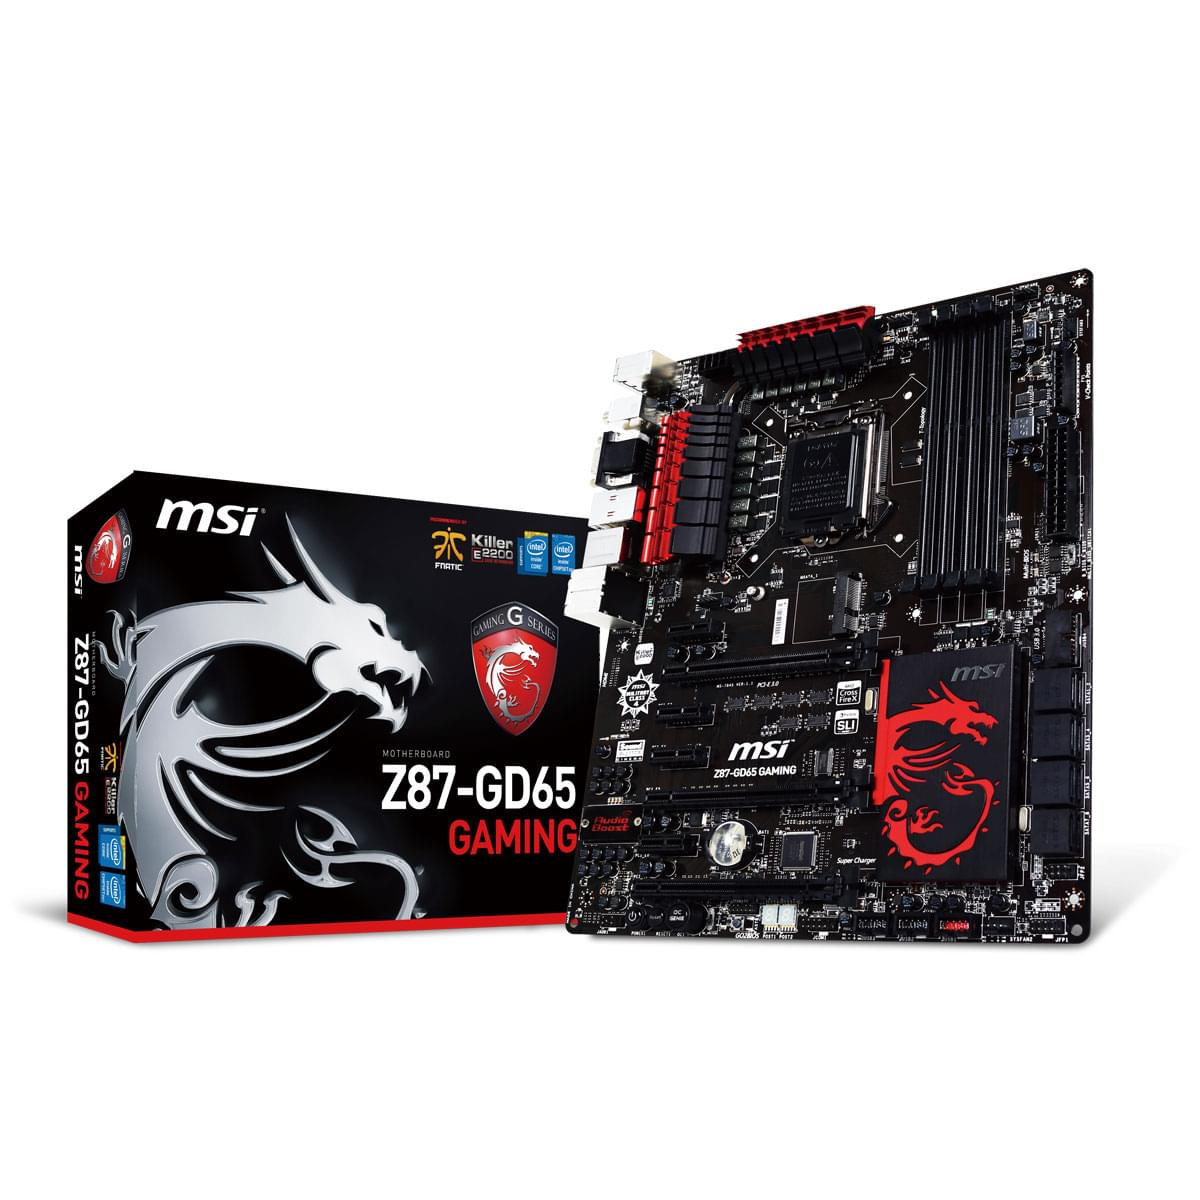 MSI Z87-GD65 Gaming ATX DDR3 - Carte mère MSI - Cybertek.fr - 0